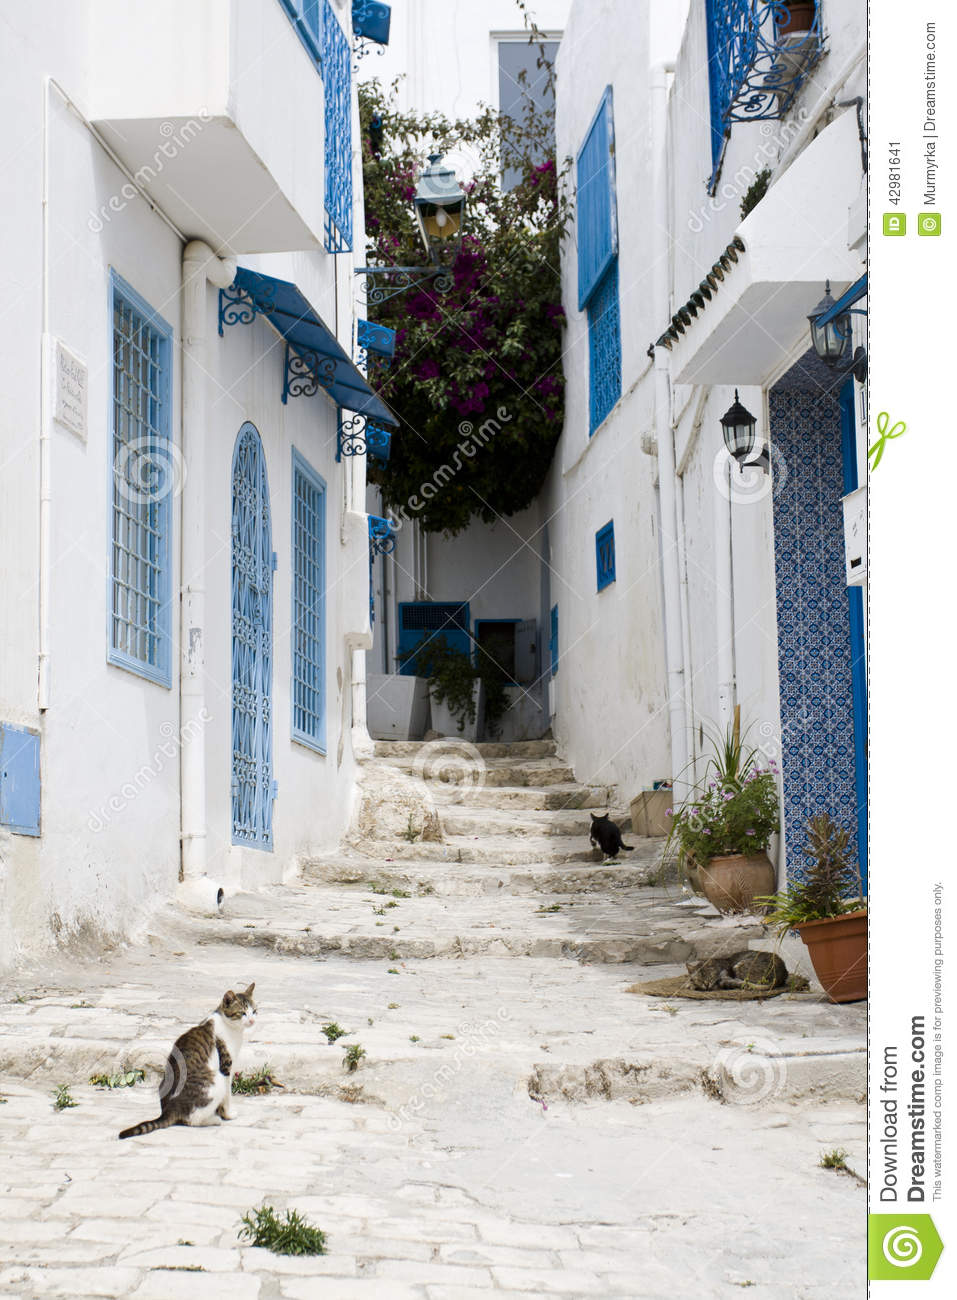 blue doors window and white wall of building in sidi bou said stock image image of city. Black Bedroom Furniture Sets. Home Design Ideas